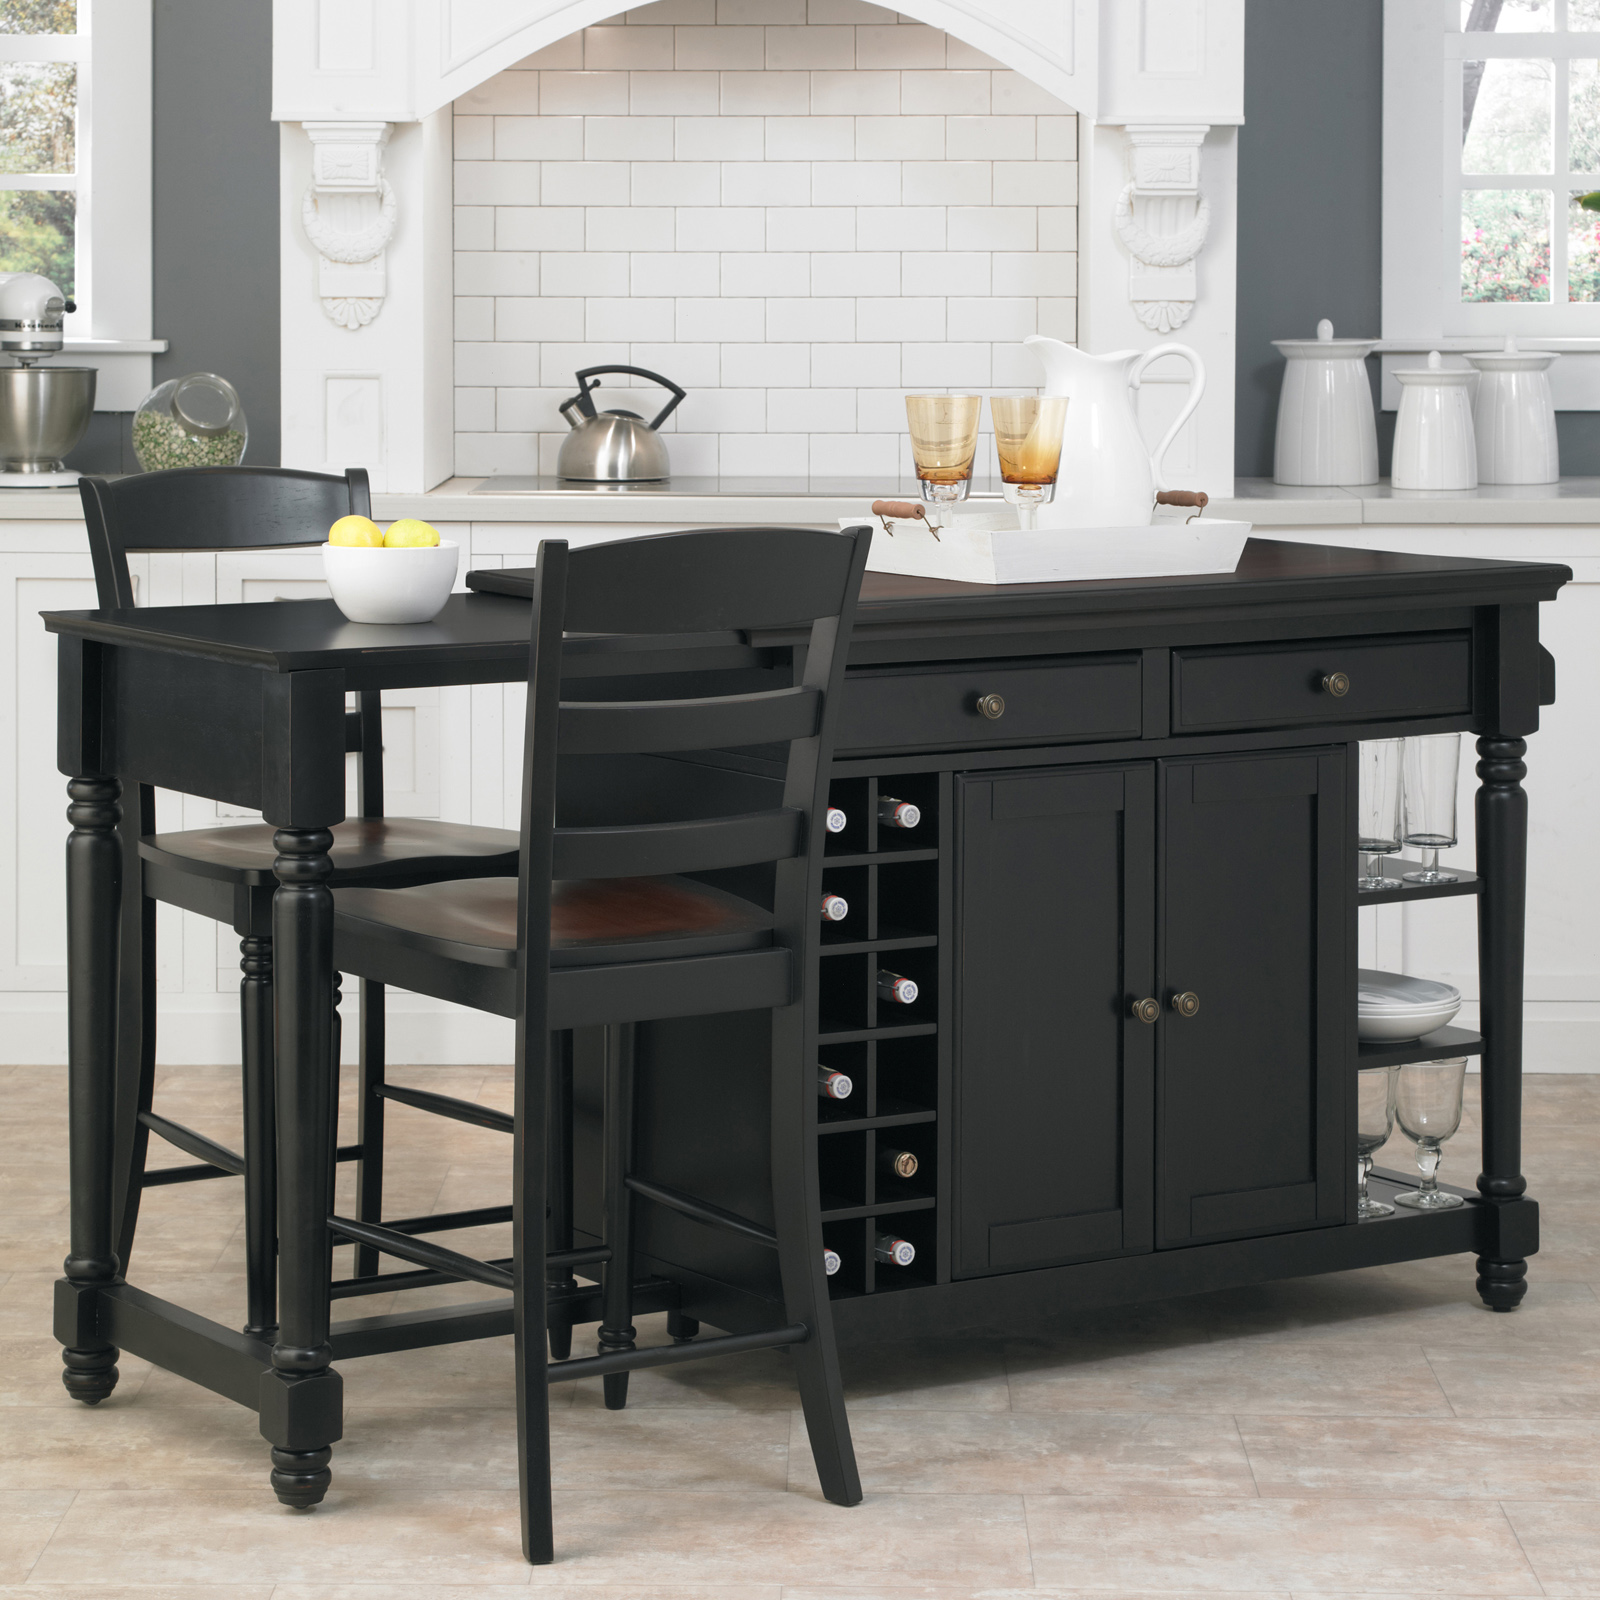 home styles grand torino 3 piece kitchen island stools